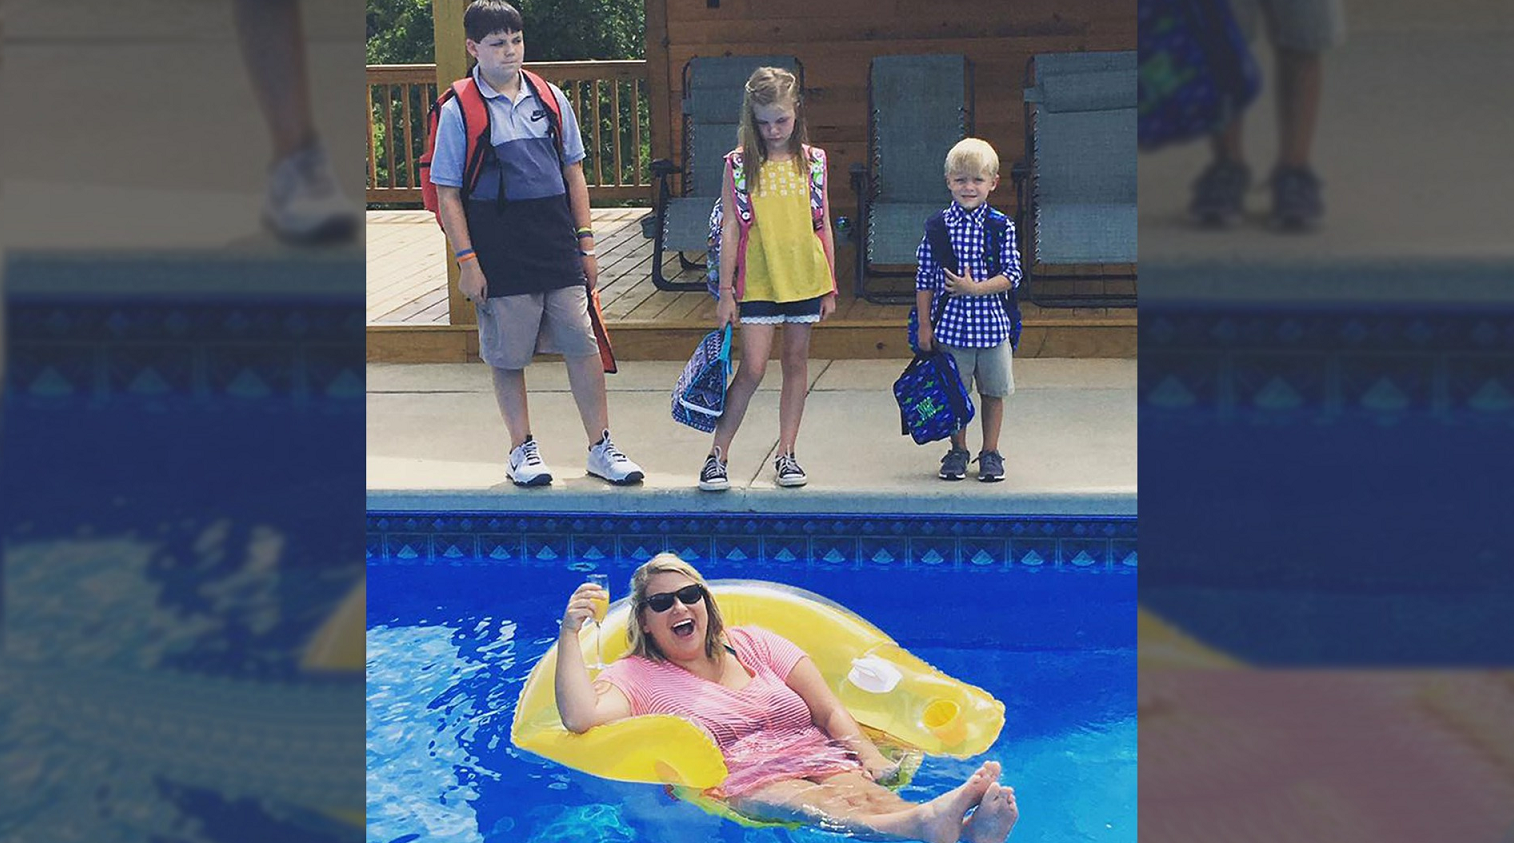 A back-to-school pool photo quickly turned viral for a mother of three in East Alabama.